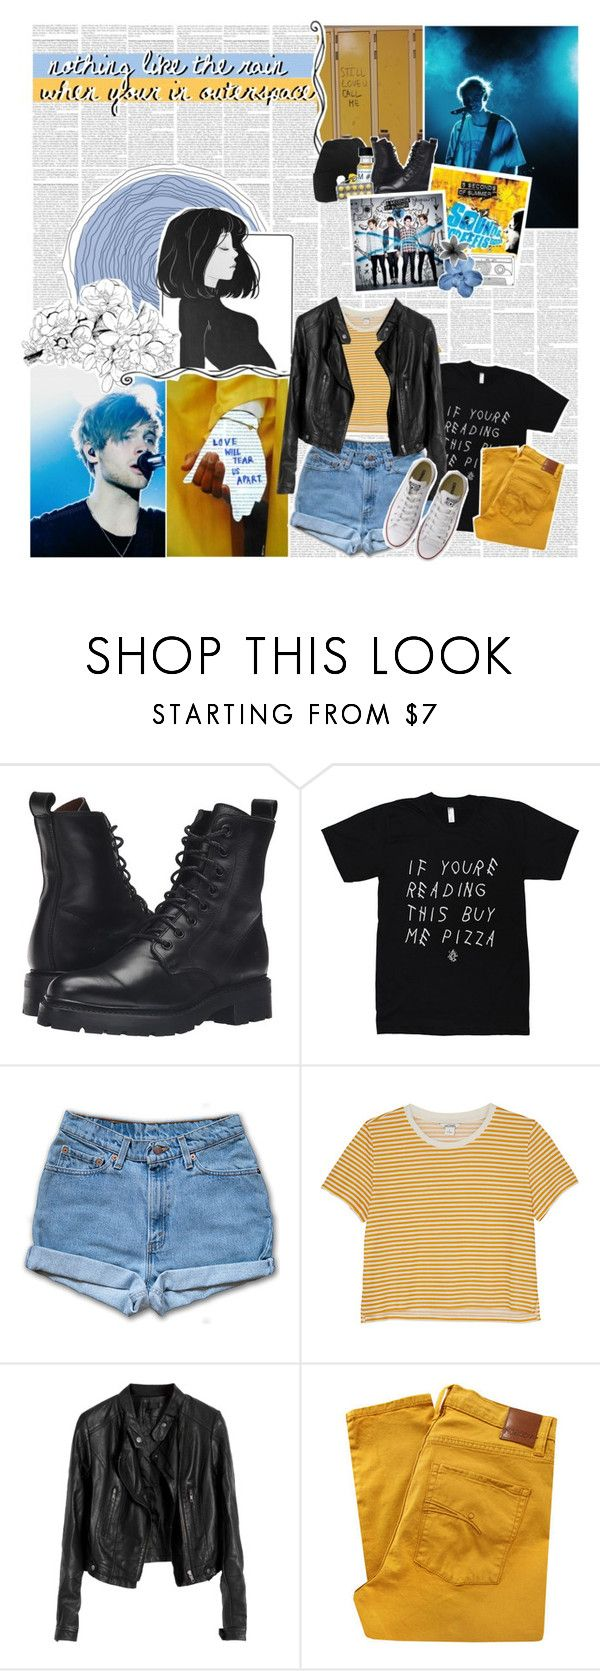 """""""&&. ✦´ love me like you did, love me like you did, i'll give you anything."""" by waywrites ❤ liked on Polyvore featuring Love Quotes Scarves, Frye, Monki, Nobody Denim, Converse and annabanana4kcontest"""